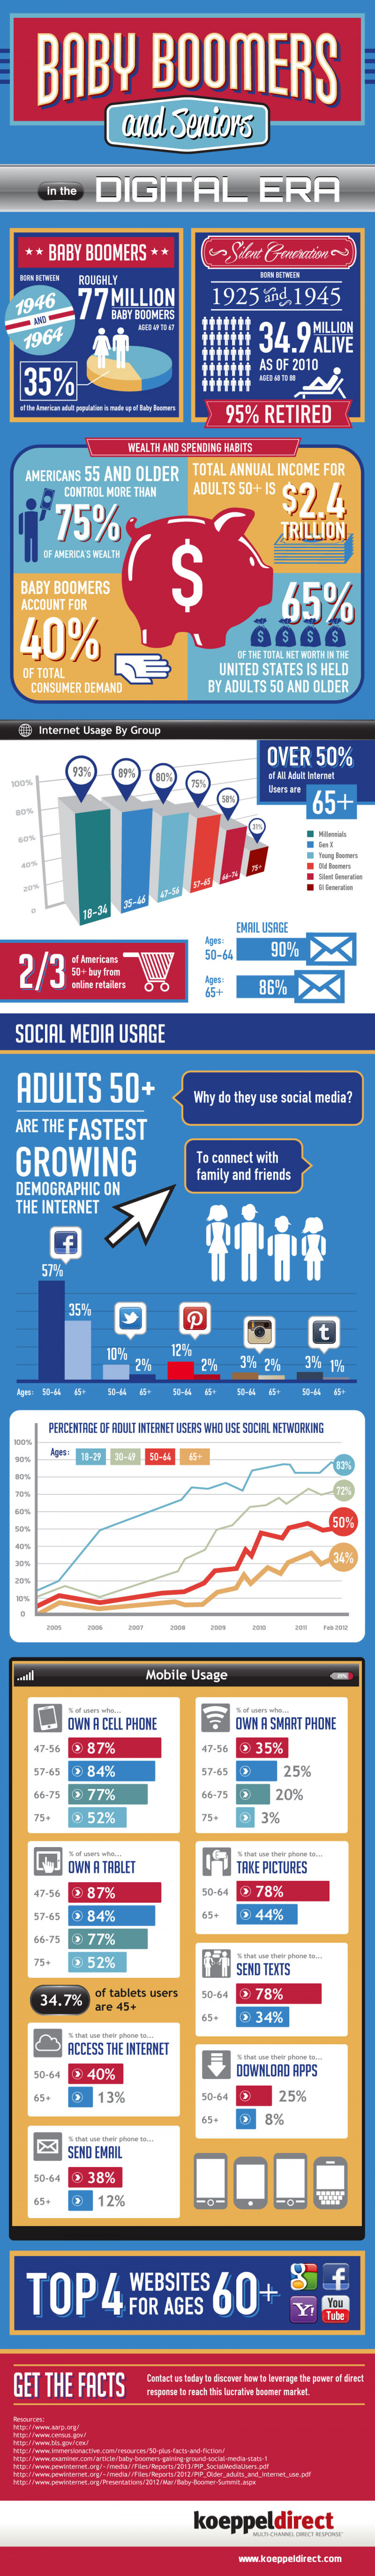 Baby Boomers and Seniors in the Digital Era Infographic